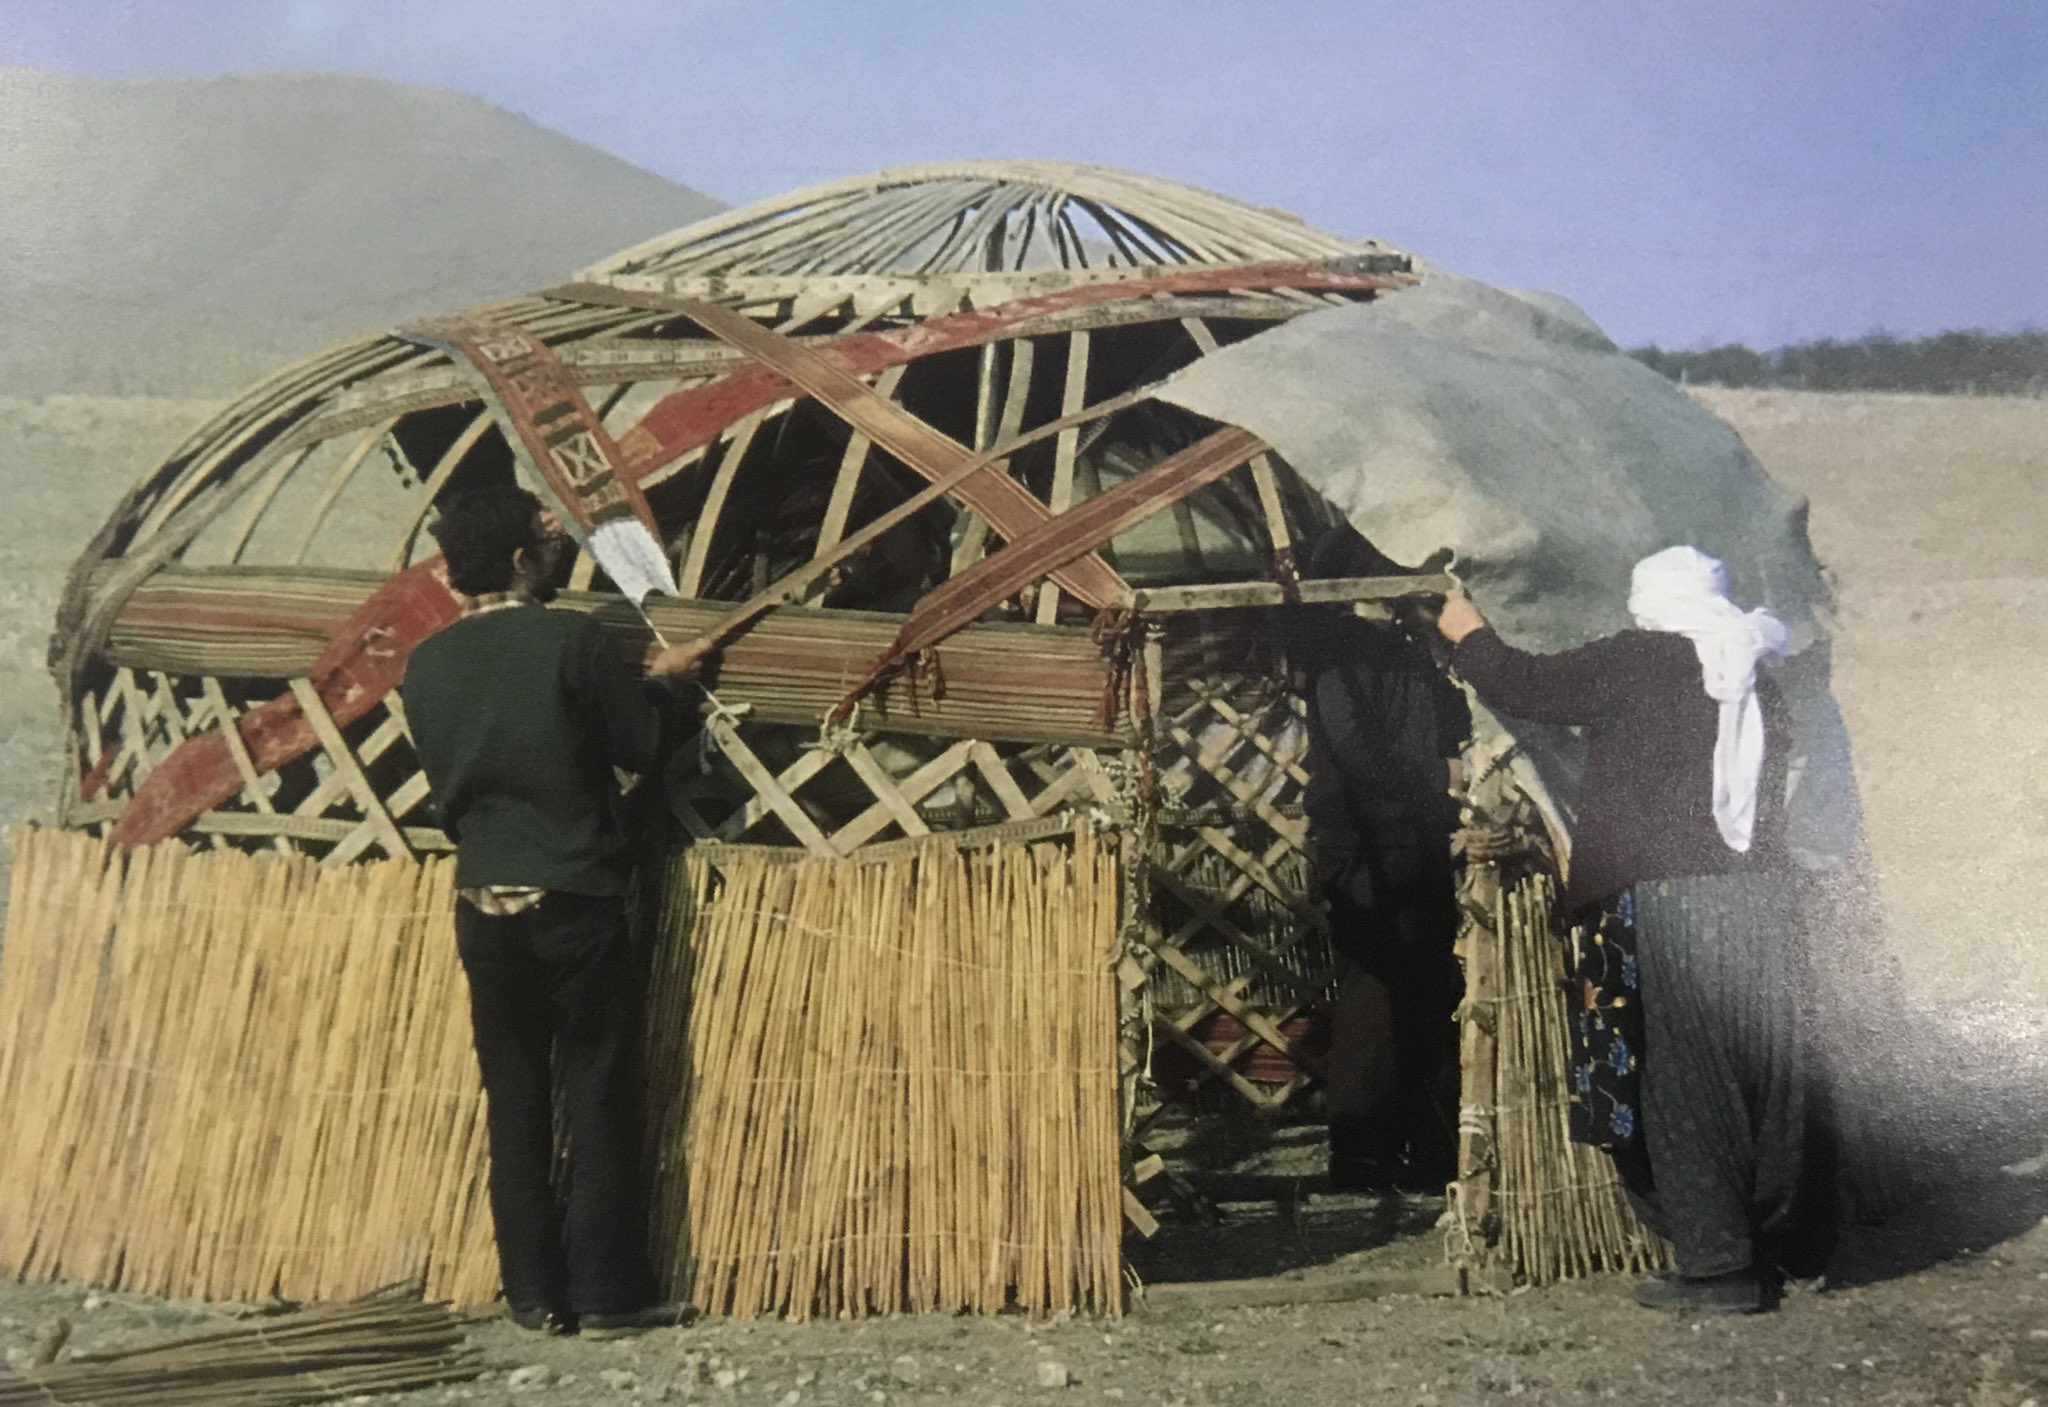 The tent frame fortified and attached with long tent bands, felt coverage of the tent put on the frame Bayat Tribe, Emirdag pasture, Afyon, West-Central Turkey, 1980s